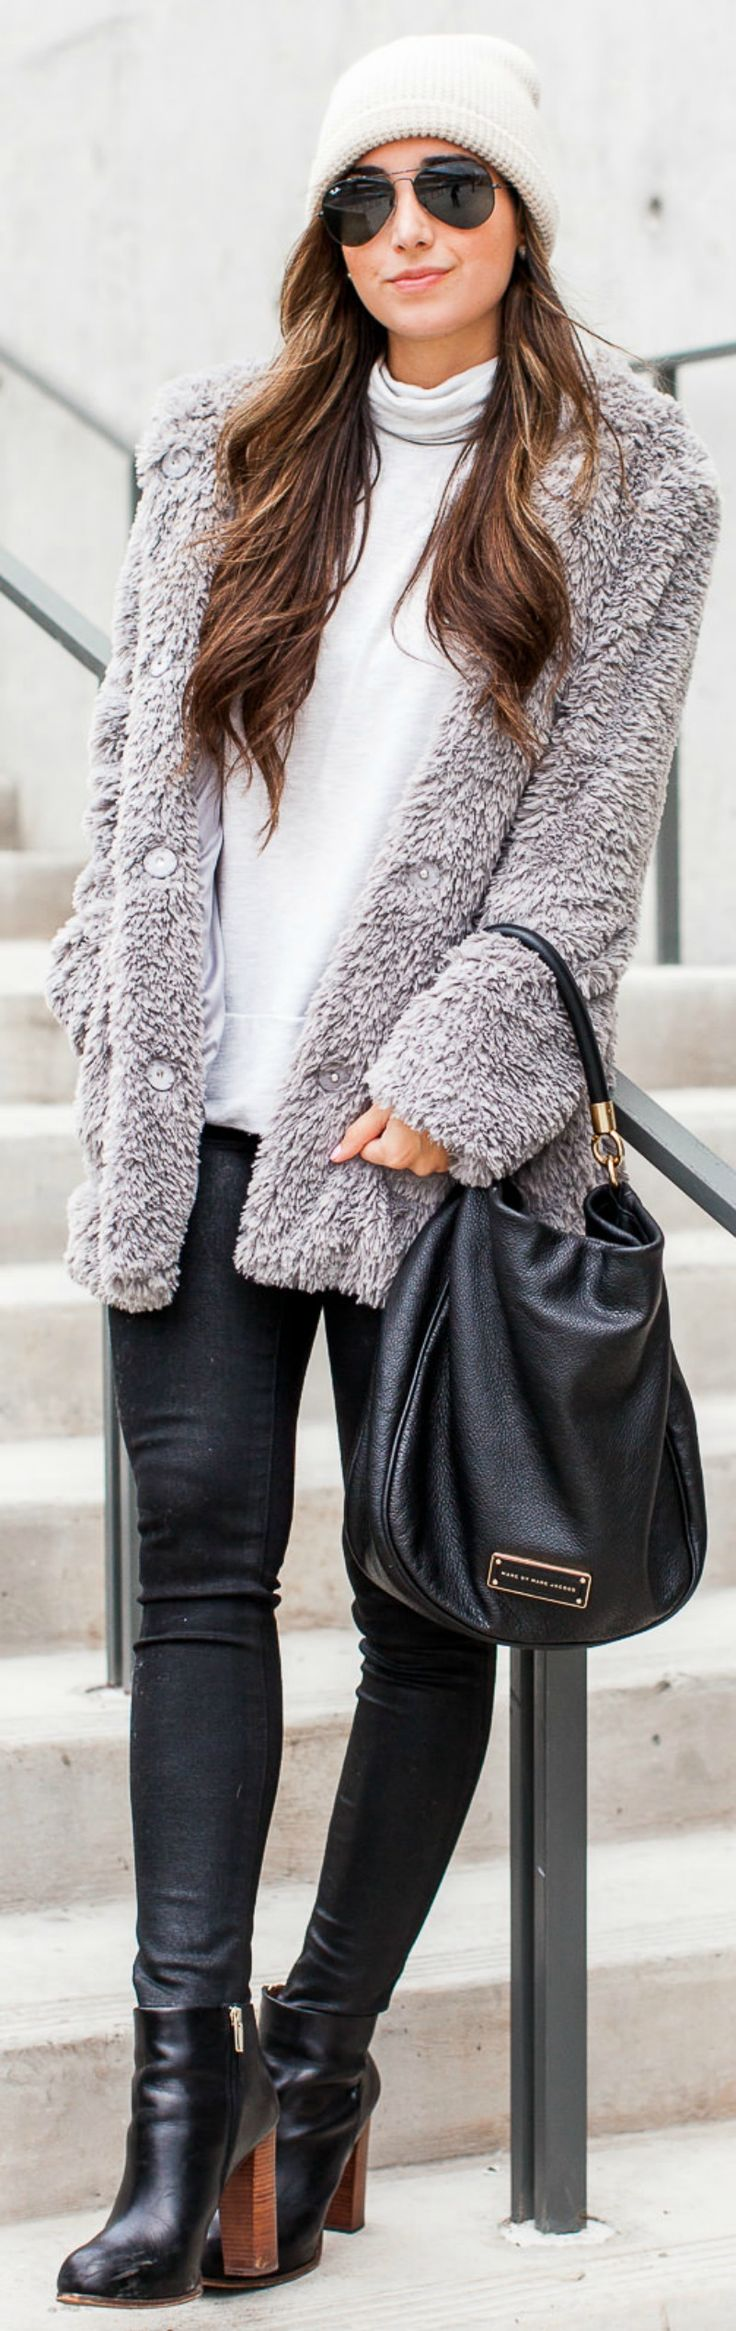 best 25+ winter coat outfits ideas on pinterest | winter style